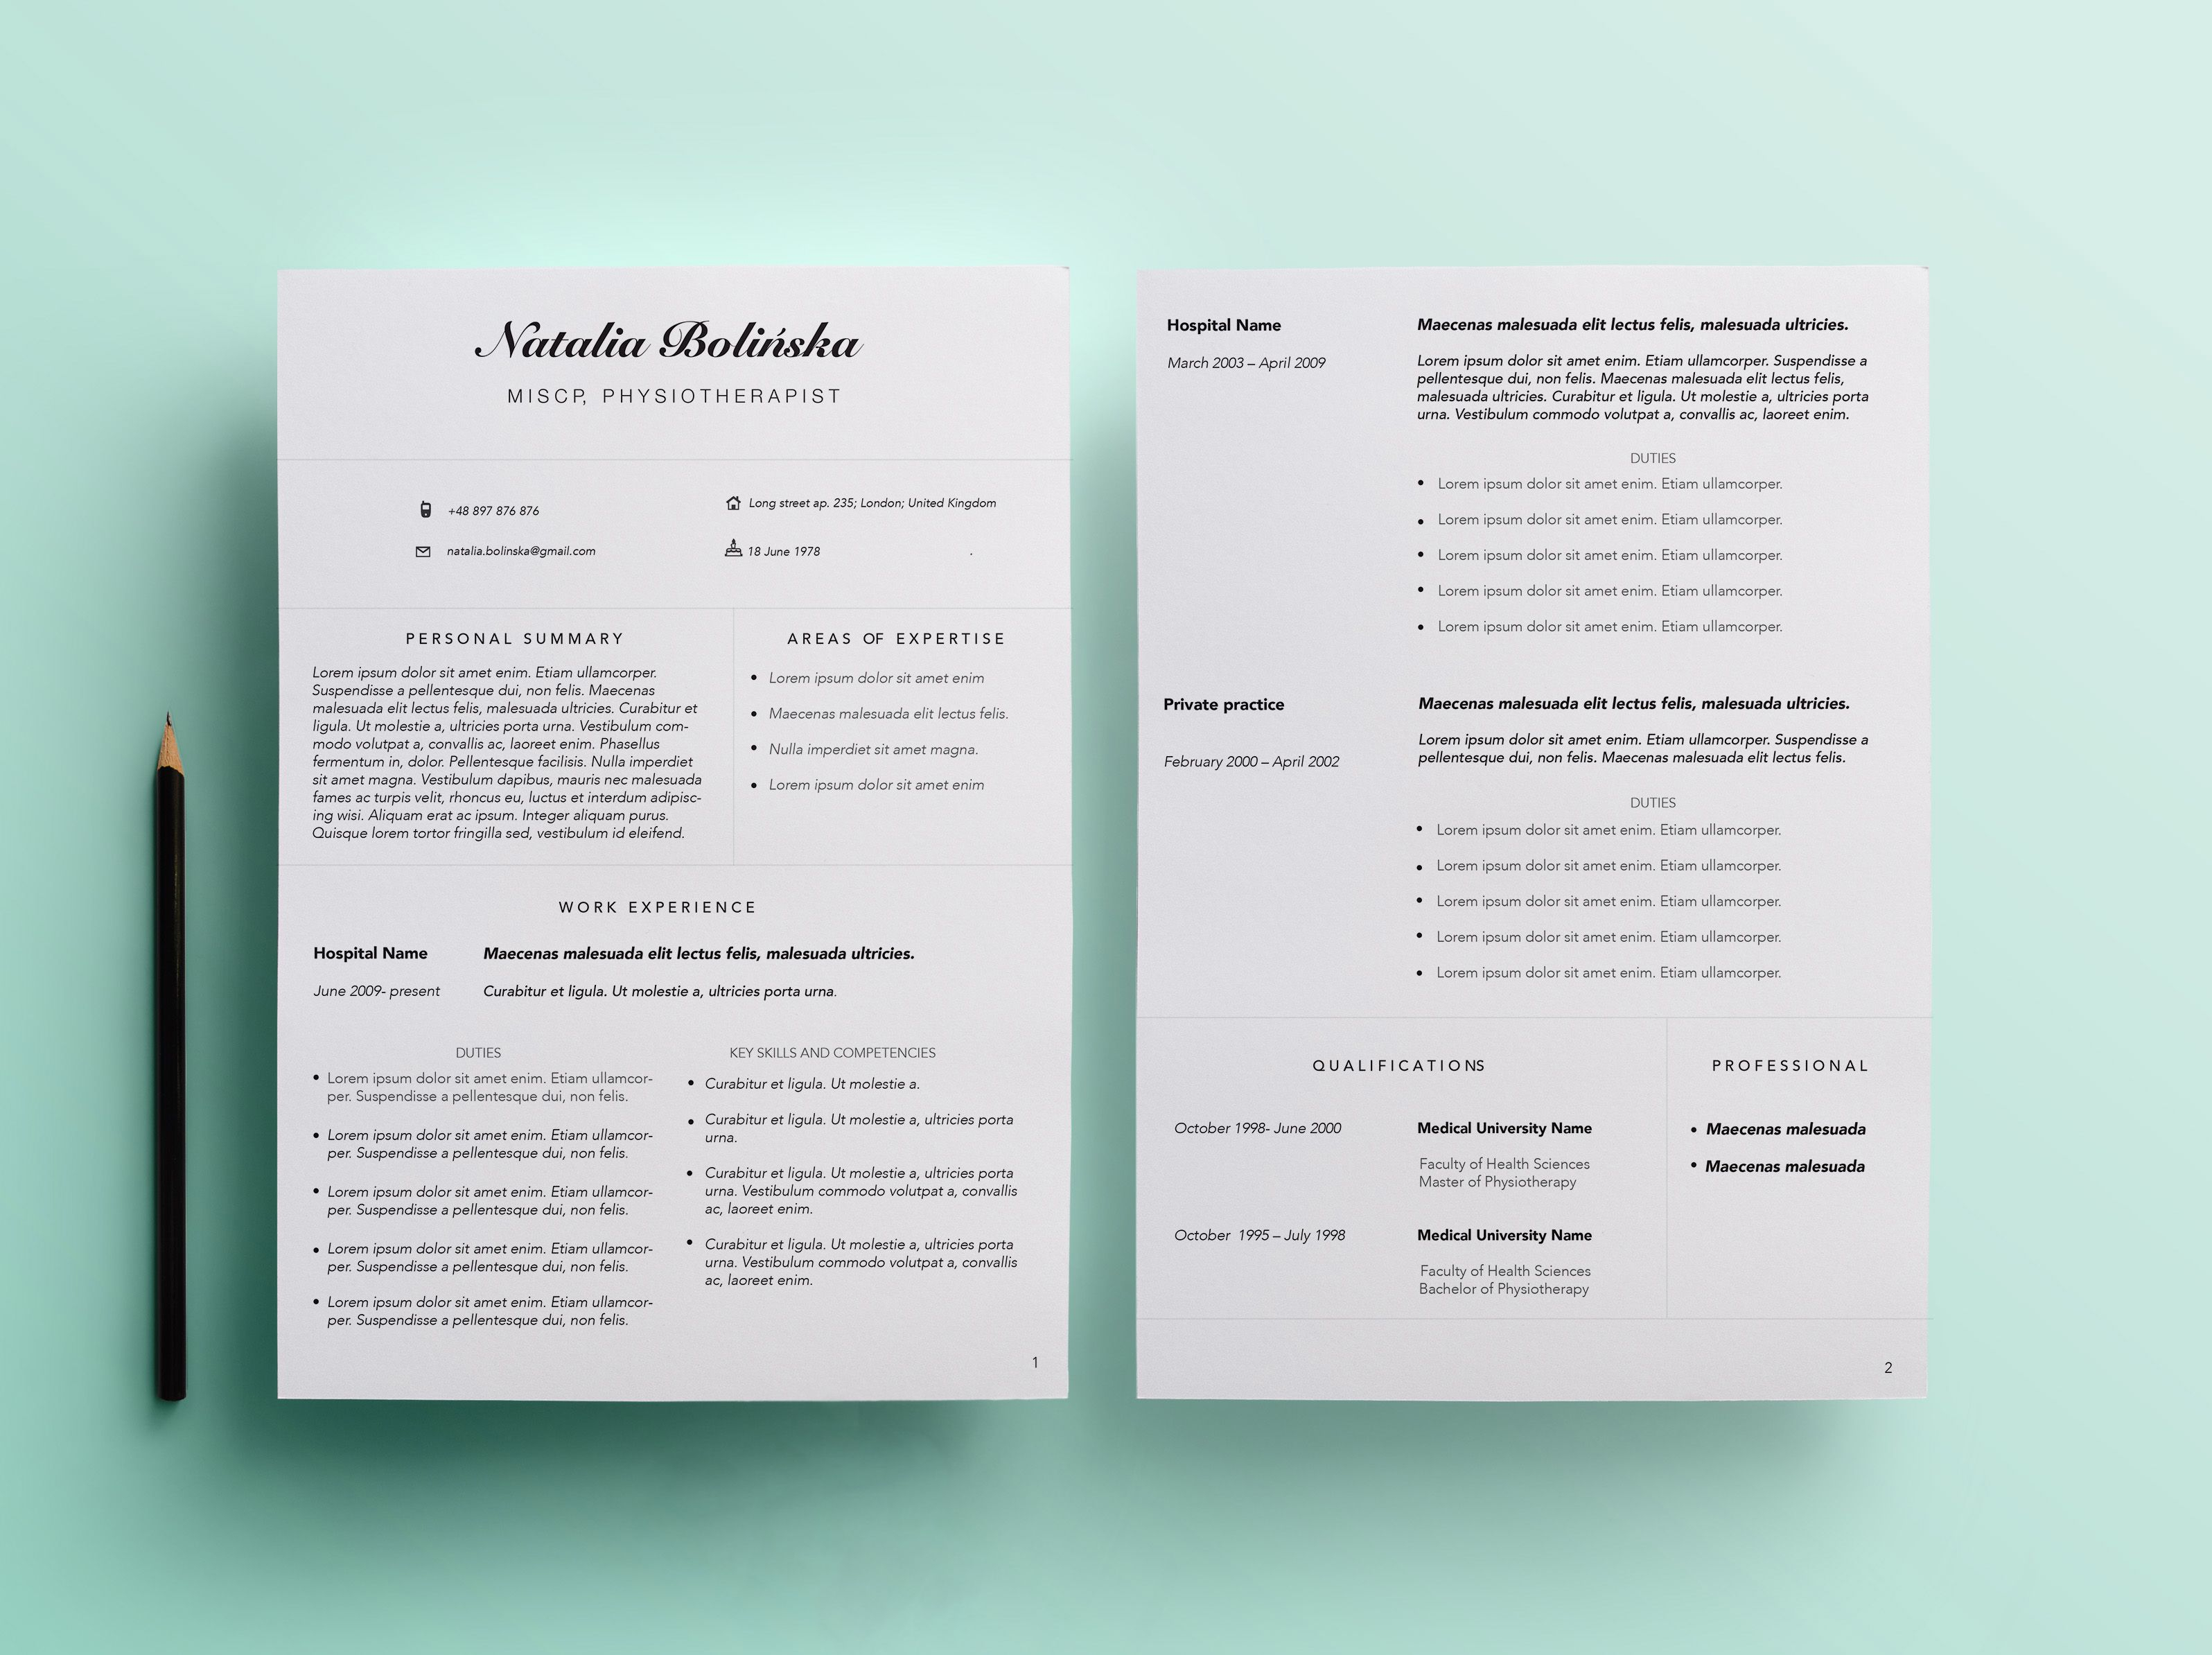 Resume Template Etsy - Beautiful Resume for Physiotherapist Looking for Similar One Find